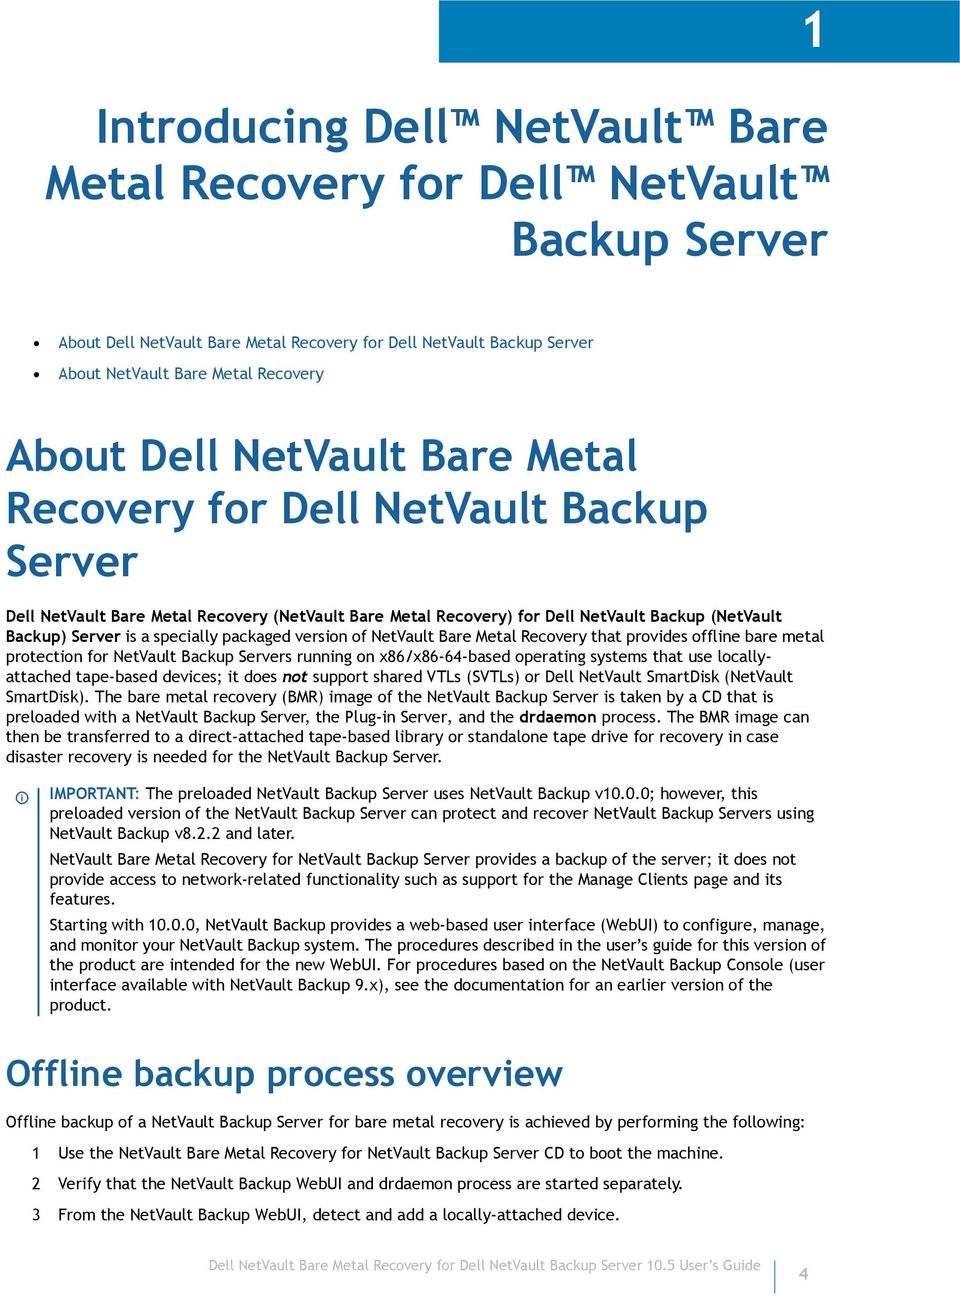 version of NetVault Bare Metal Recovery that provides offline bare metal protection for NetVault Backup Servers running on x86/x86-64-based operating systems that use locallyattached tape-based